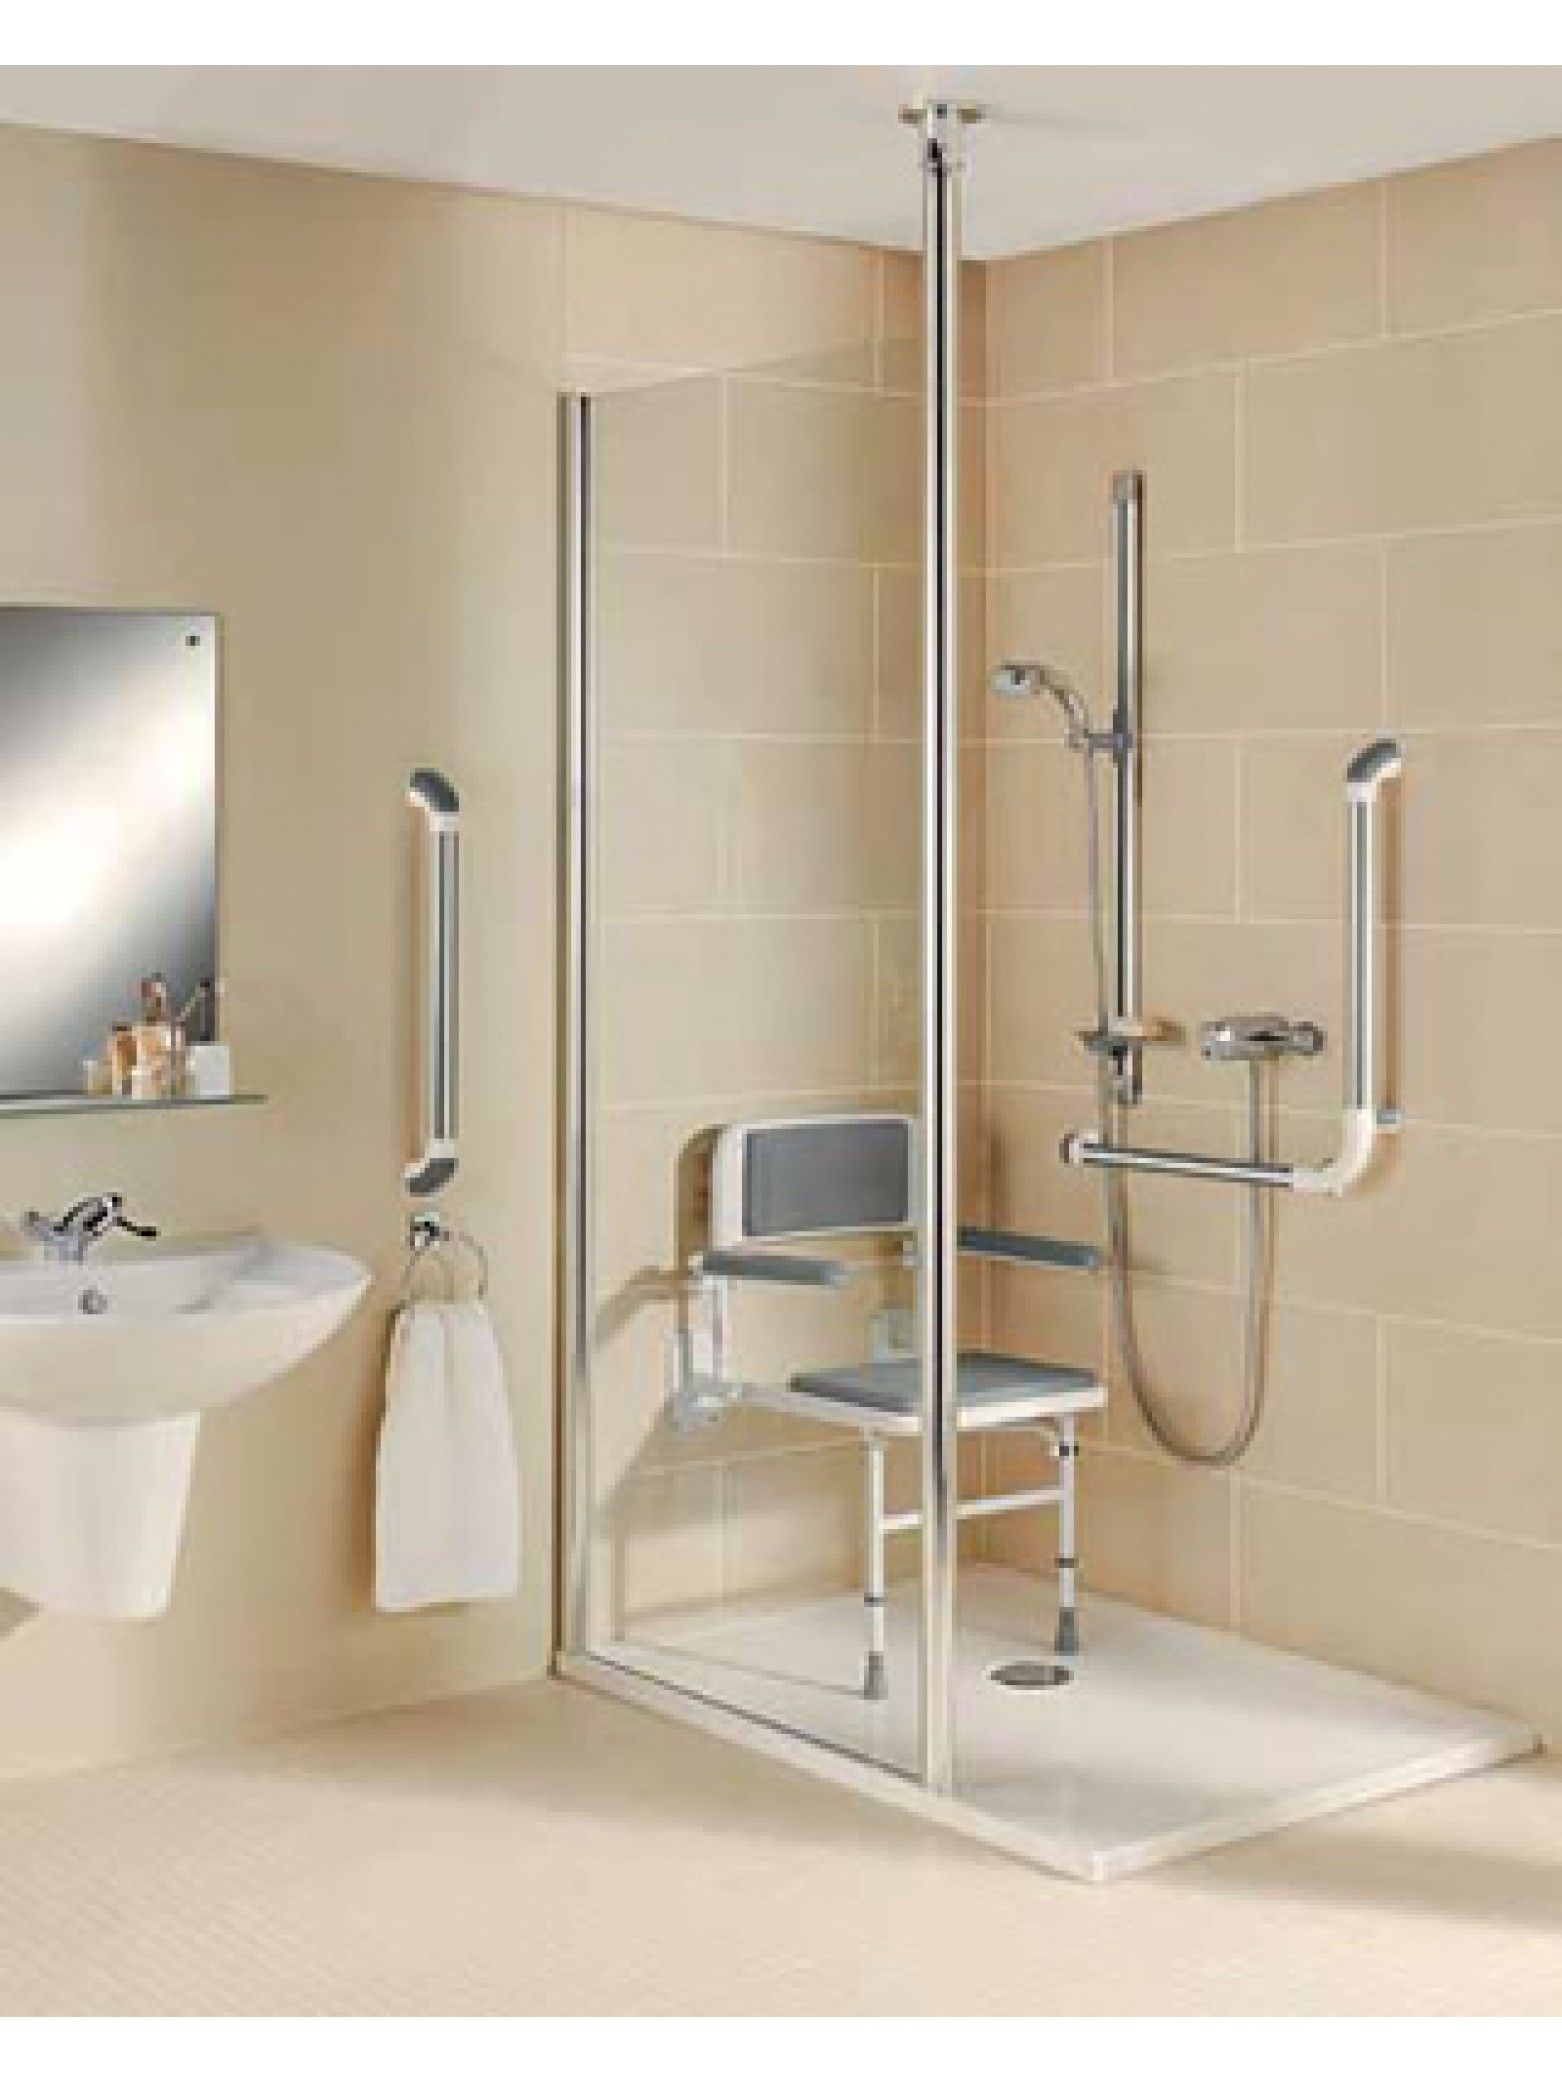 Pin by Heather Beczo on New bath ideas   Pinterest   Wet room shower ...